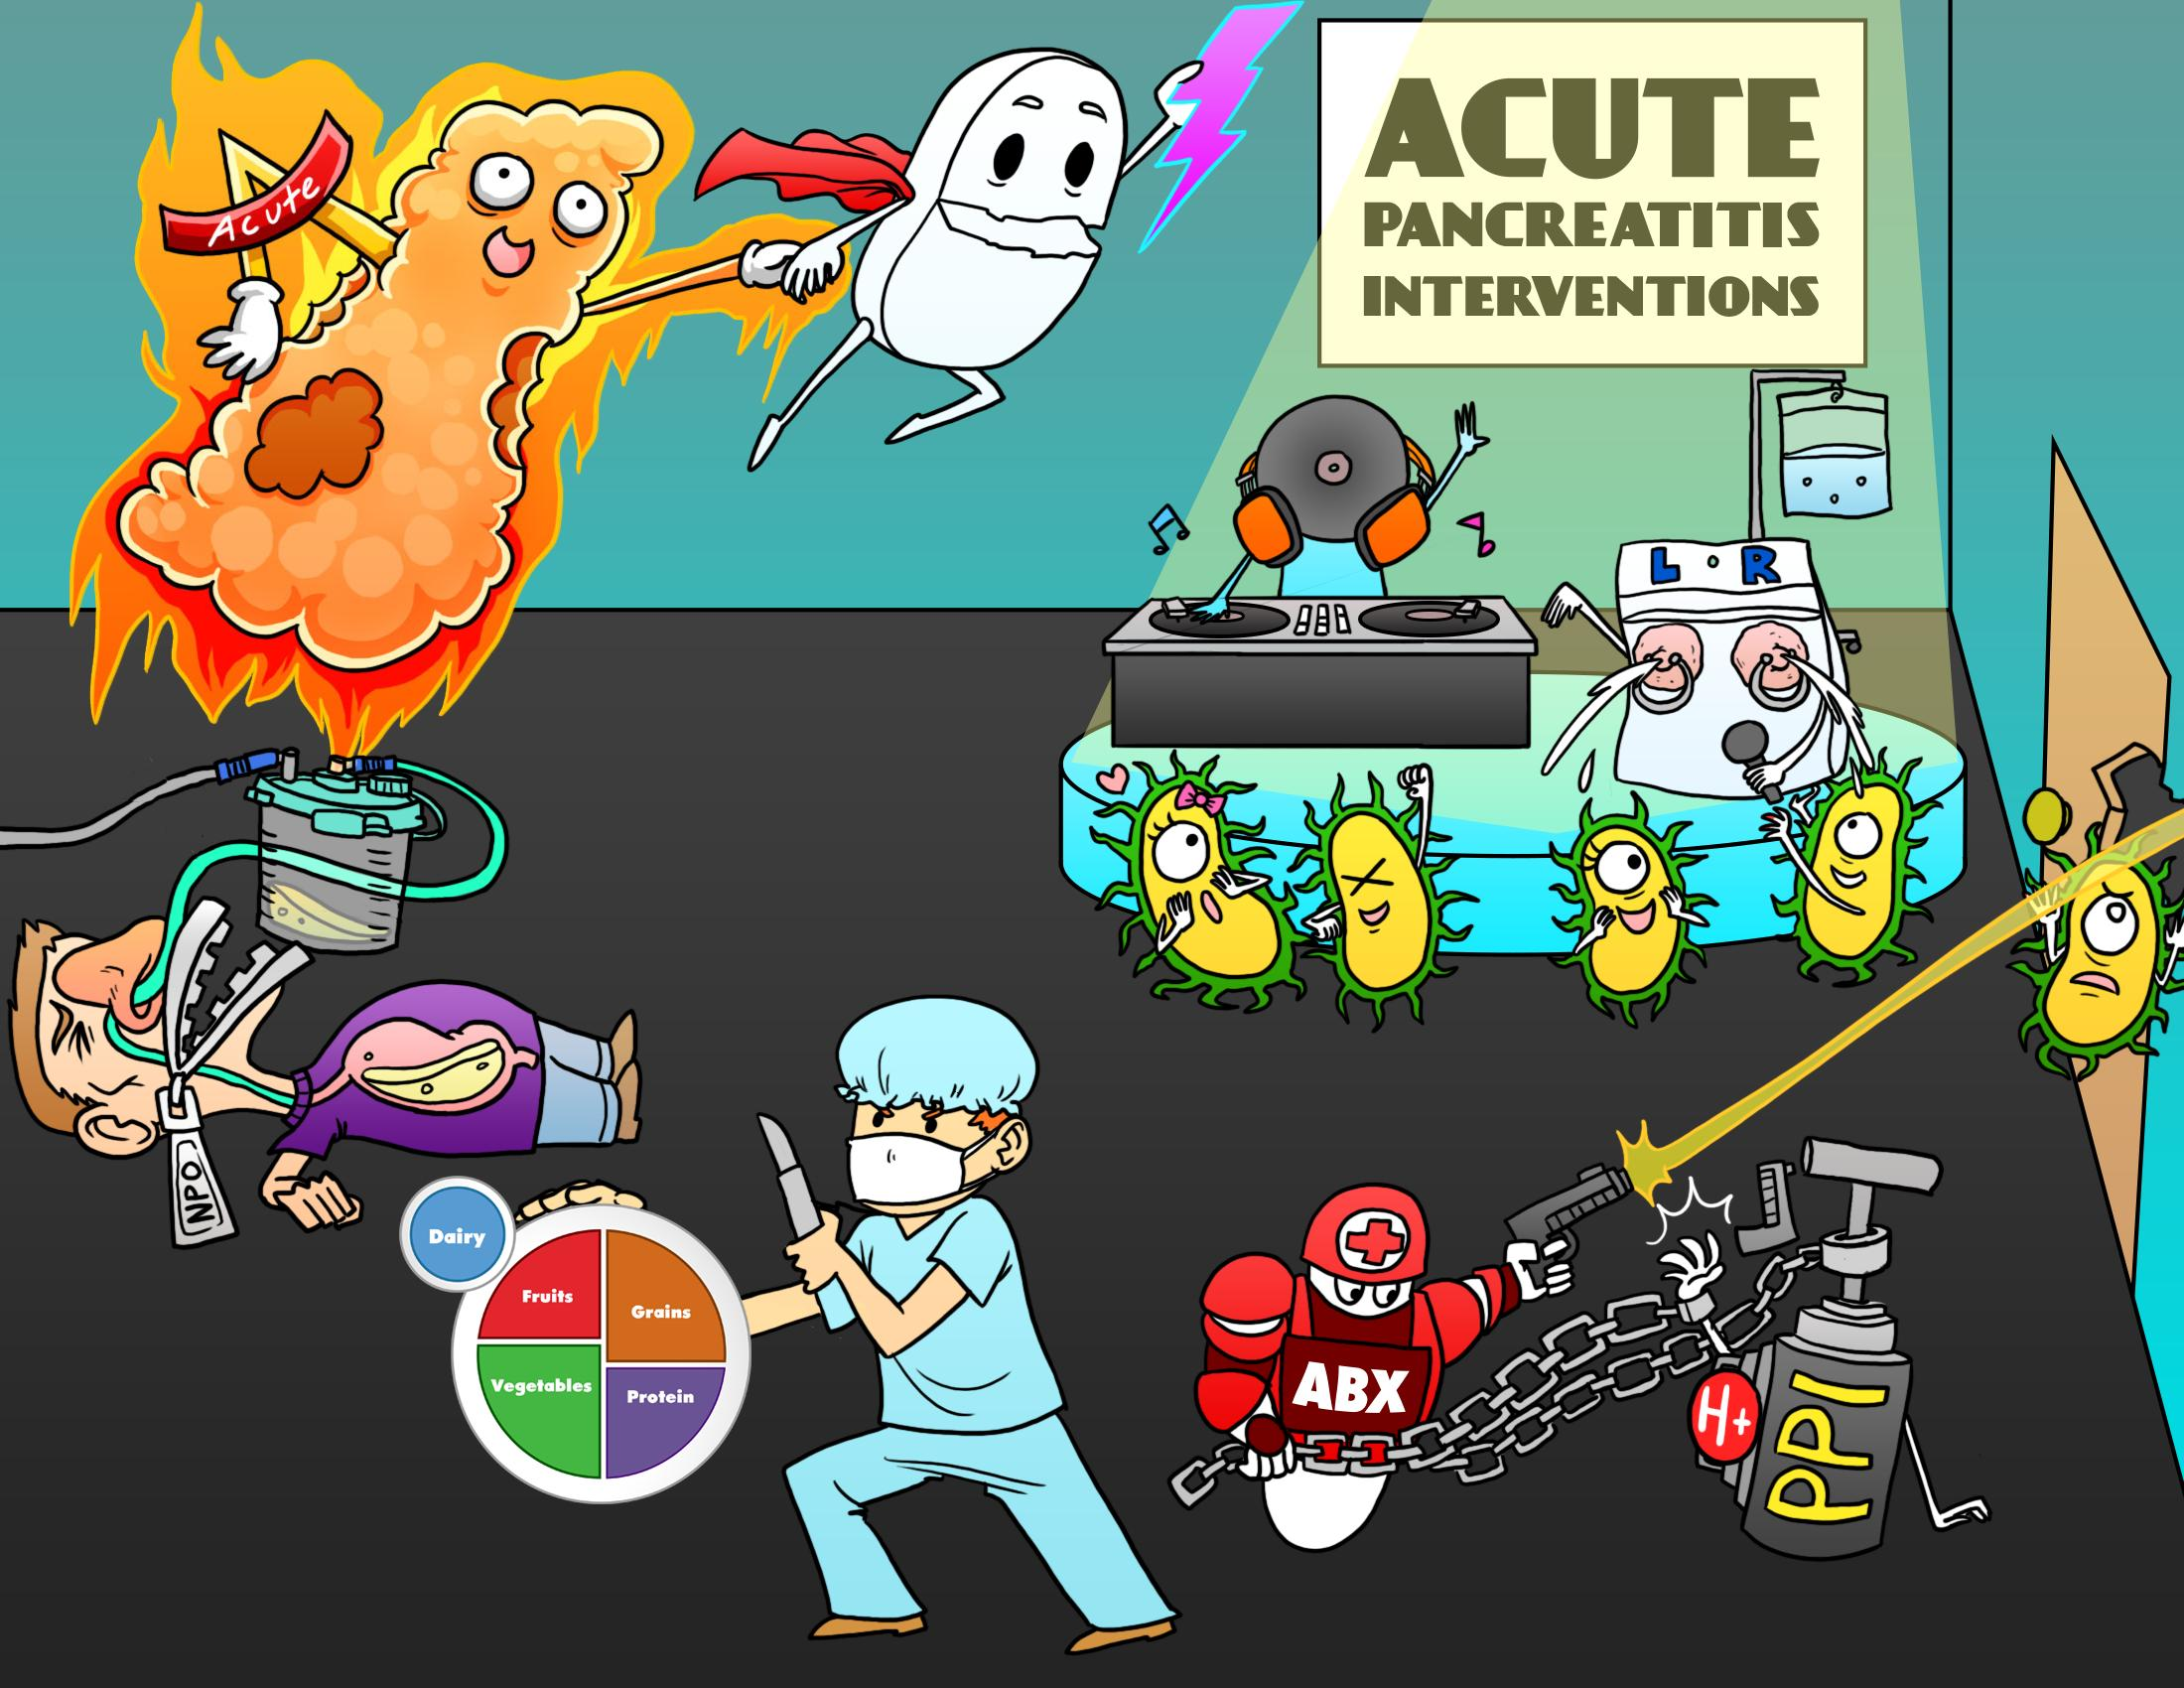 Acute Pancreatitis Interventions